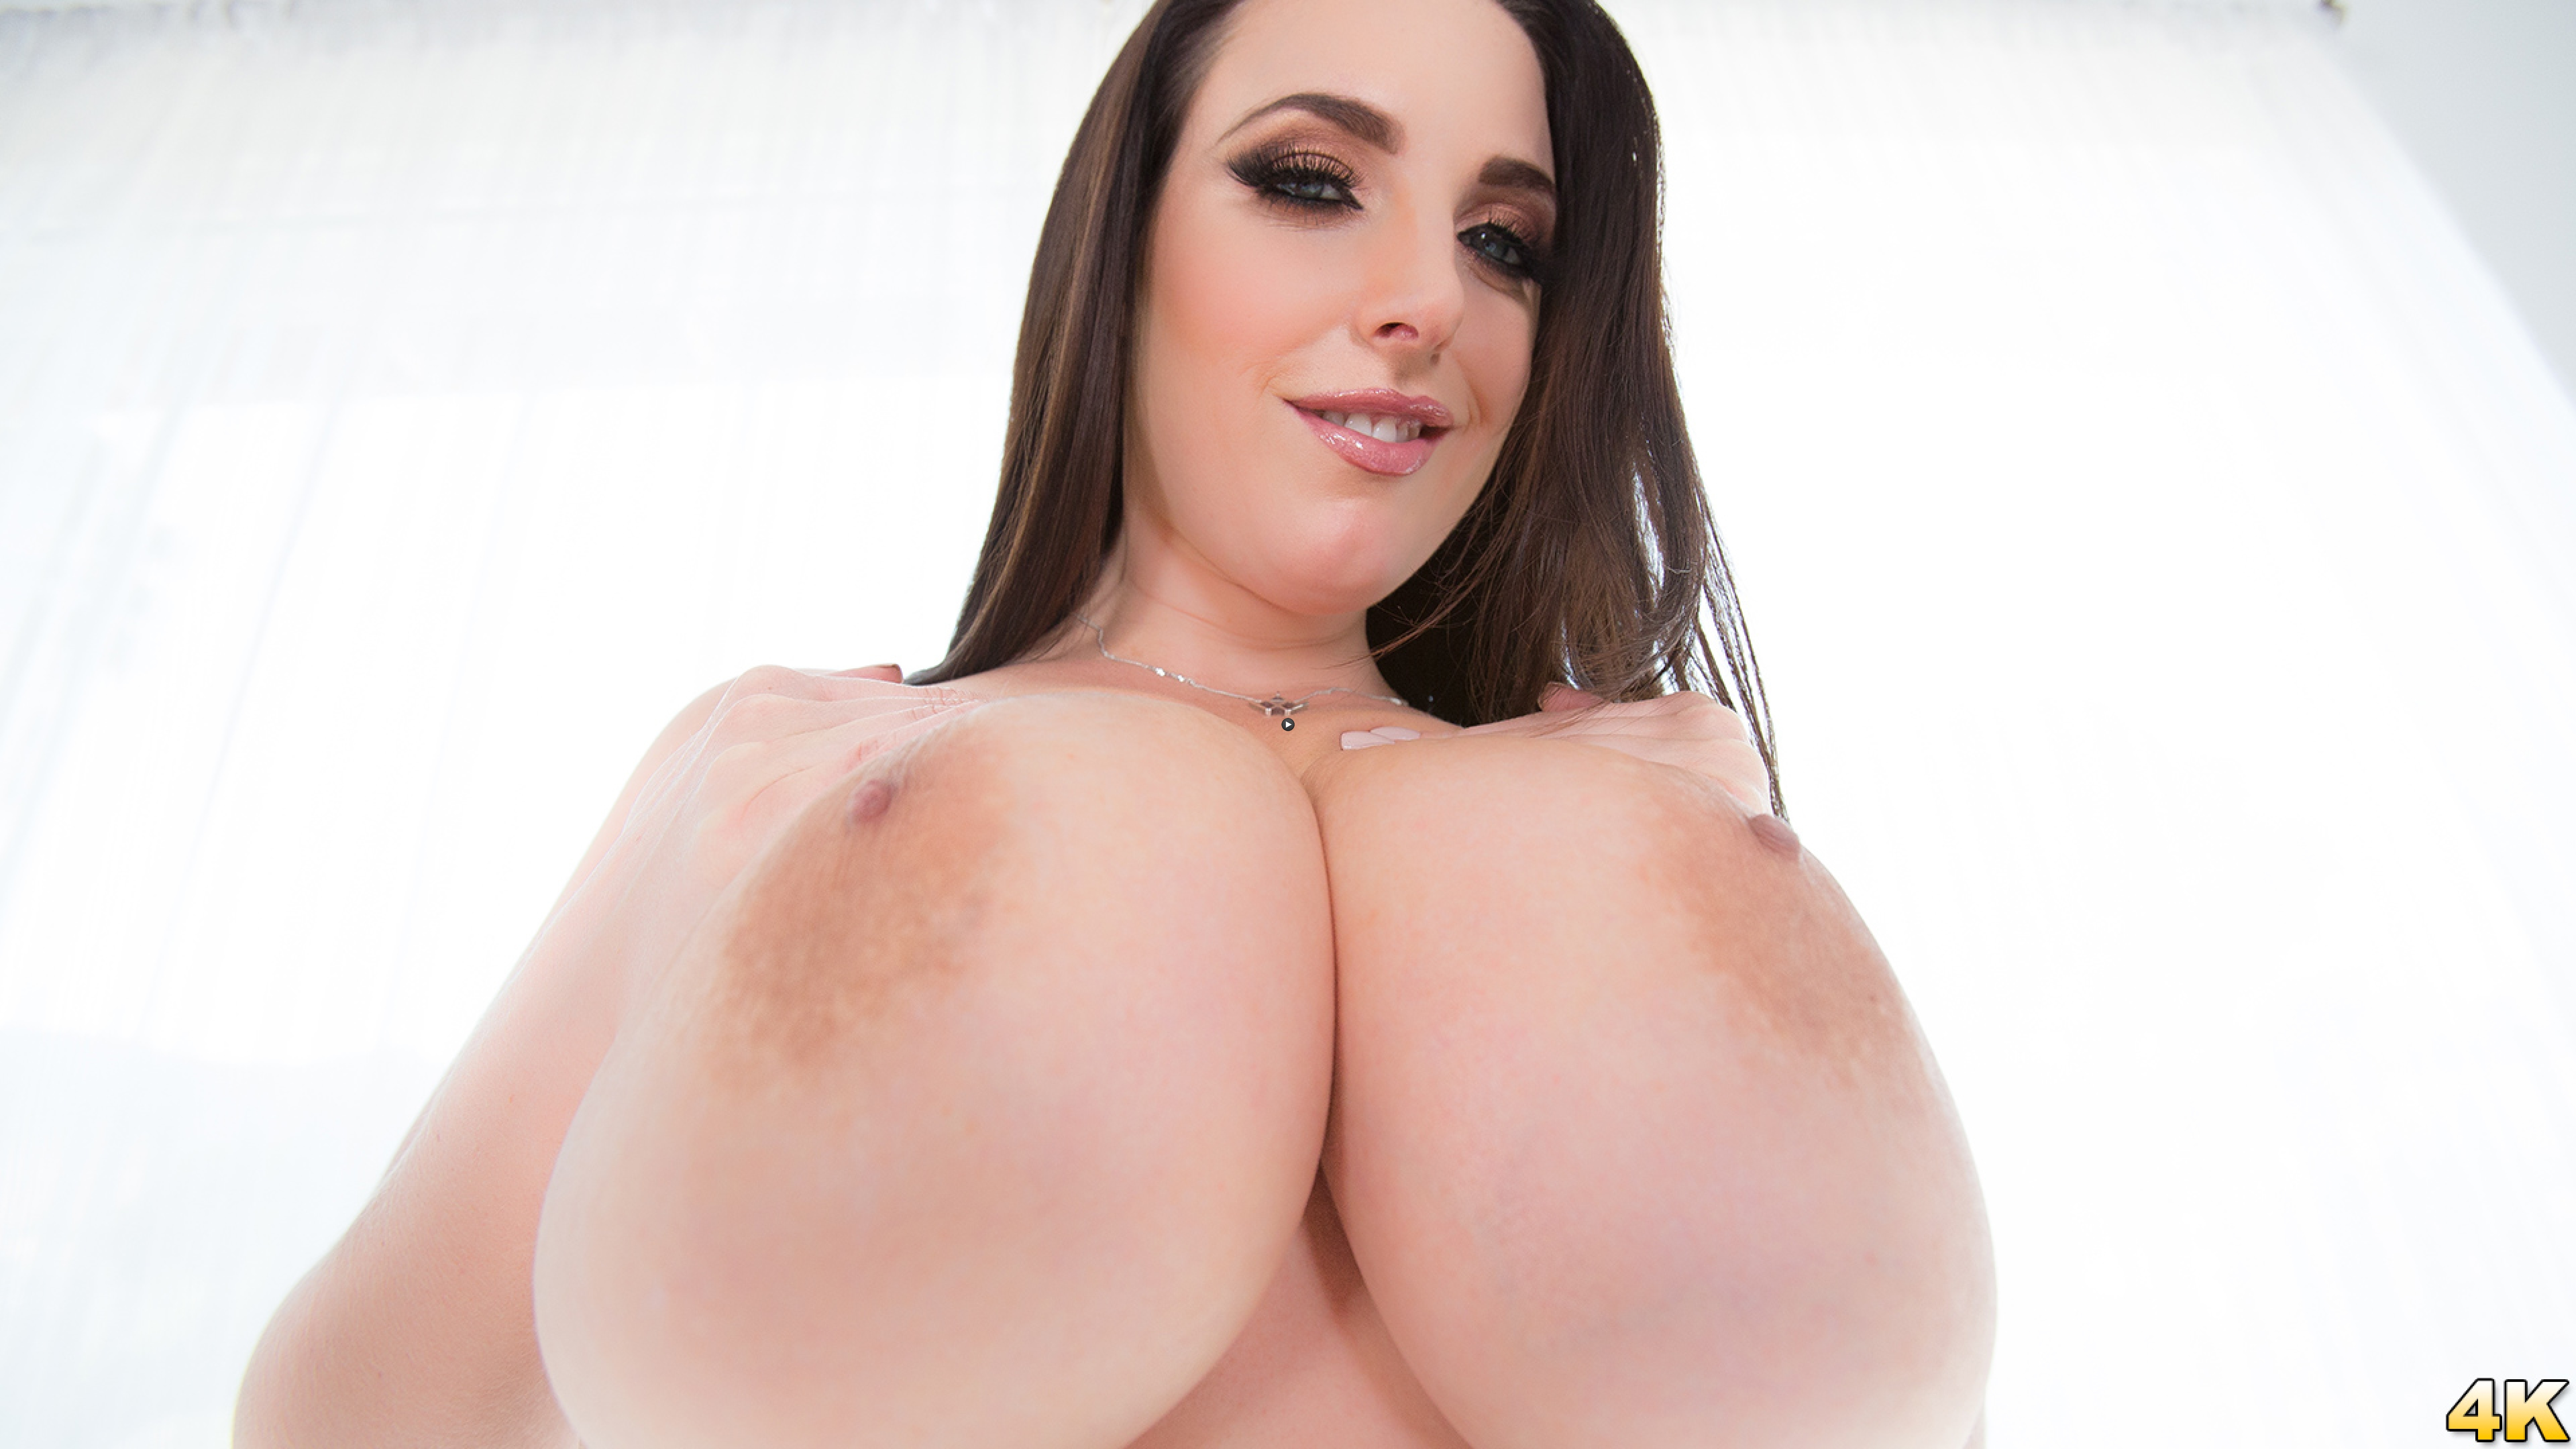 Watch Trailer Angela White Shows Off Her Big Natural 42G Tits, This Aussie Gets A Cock In Her Outback!